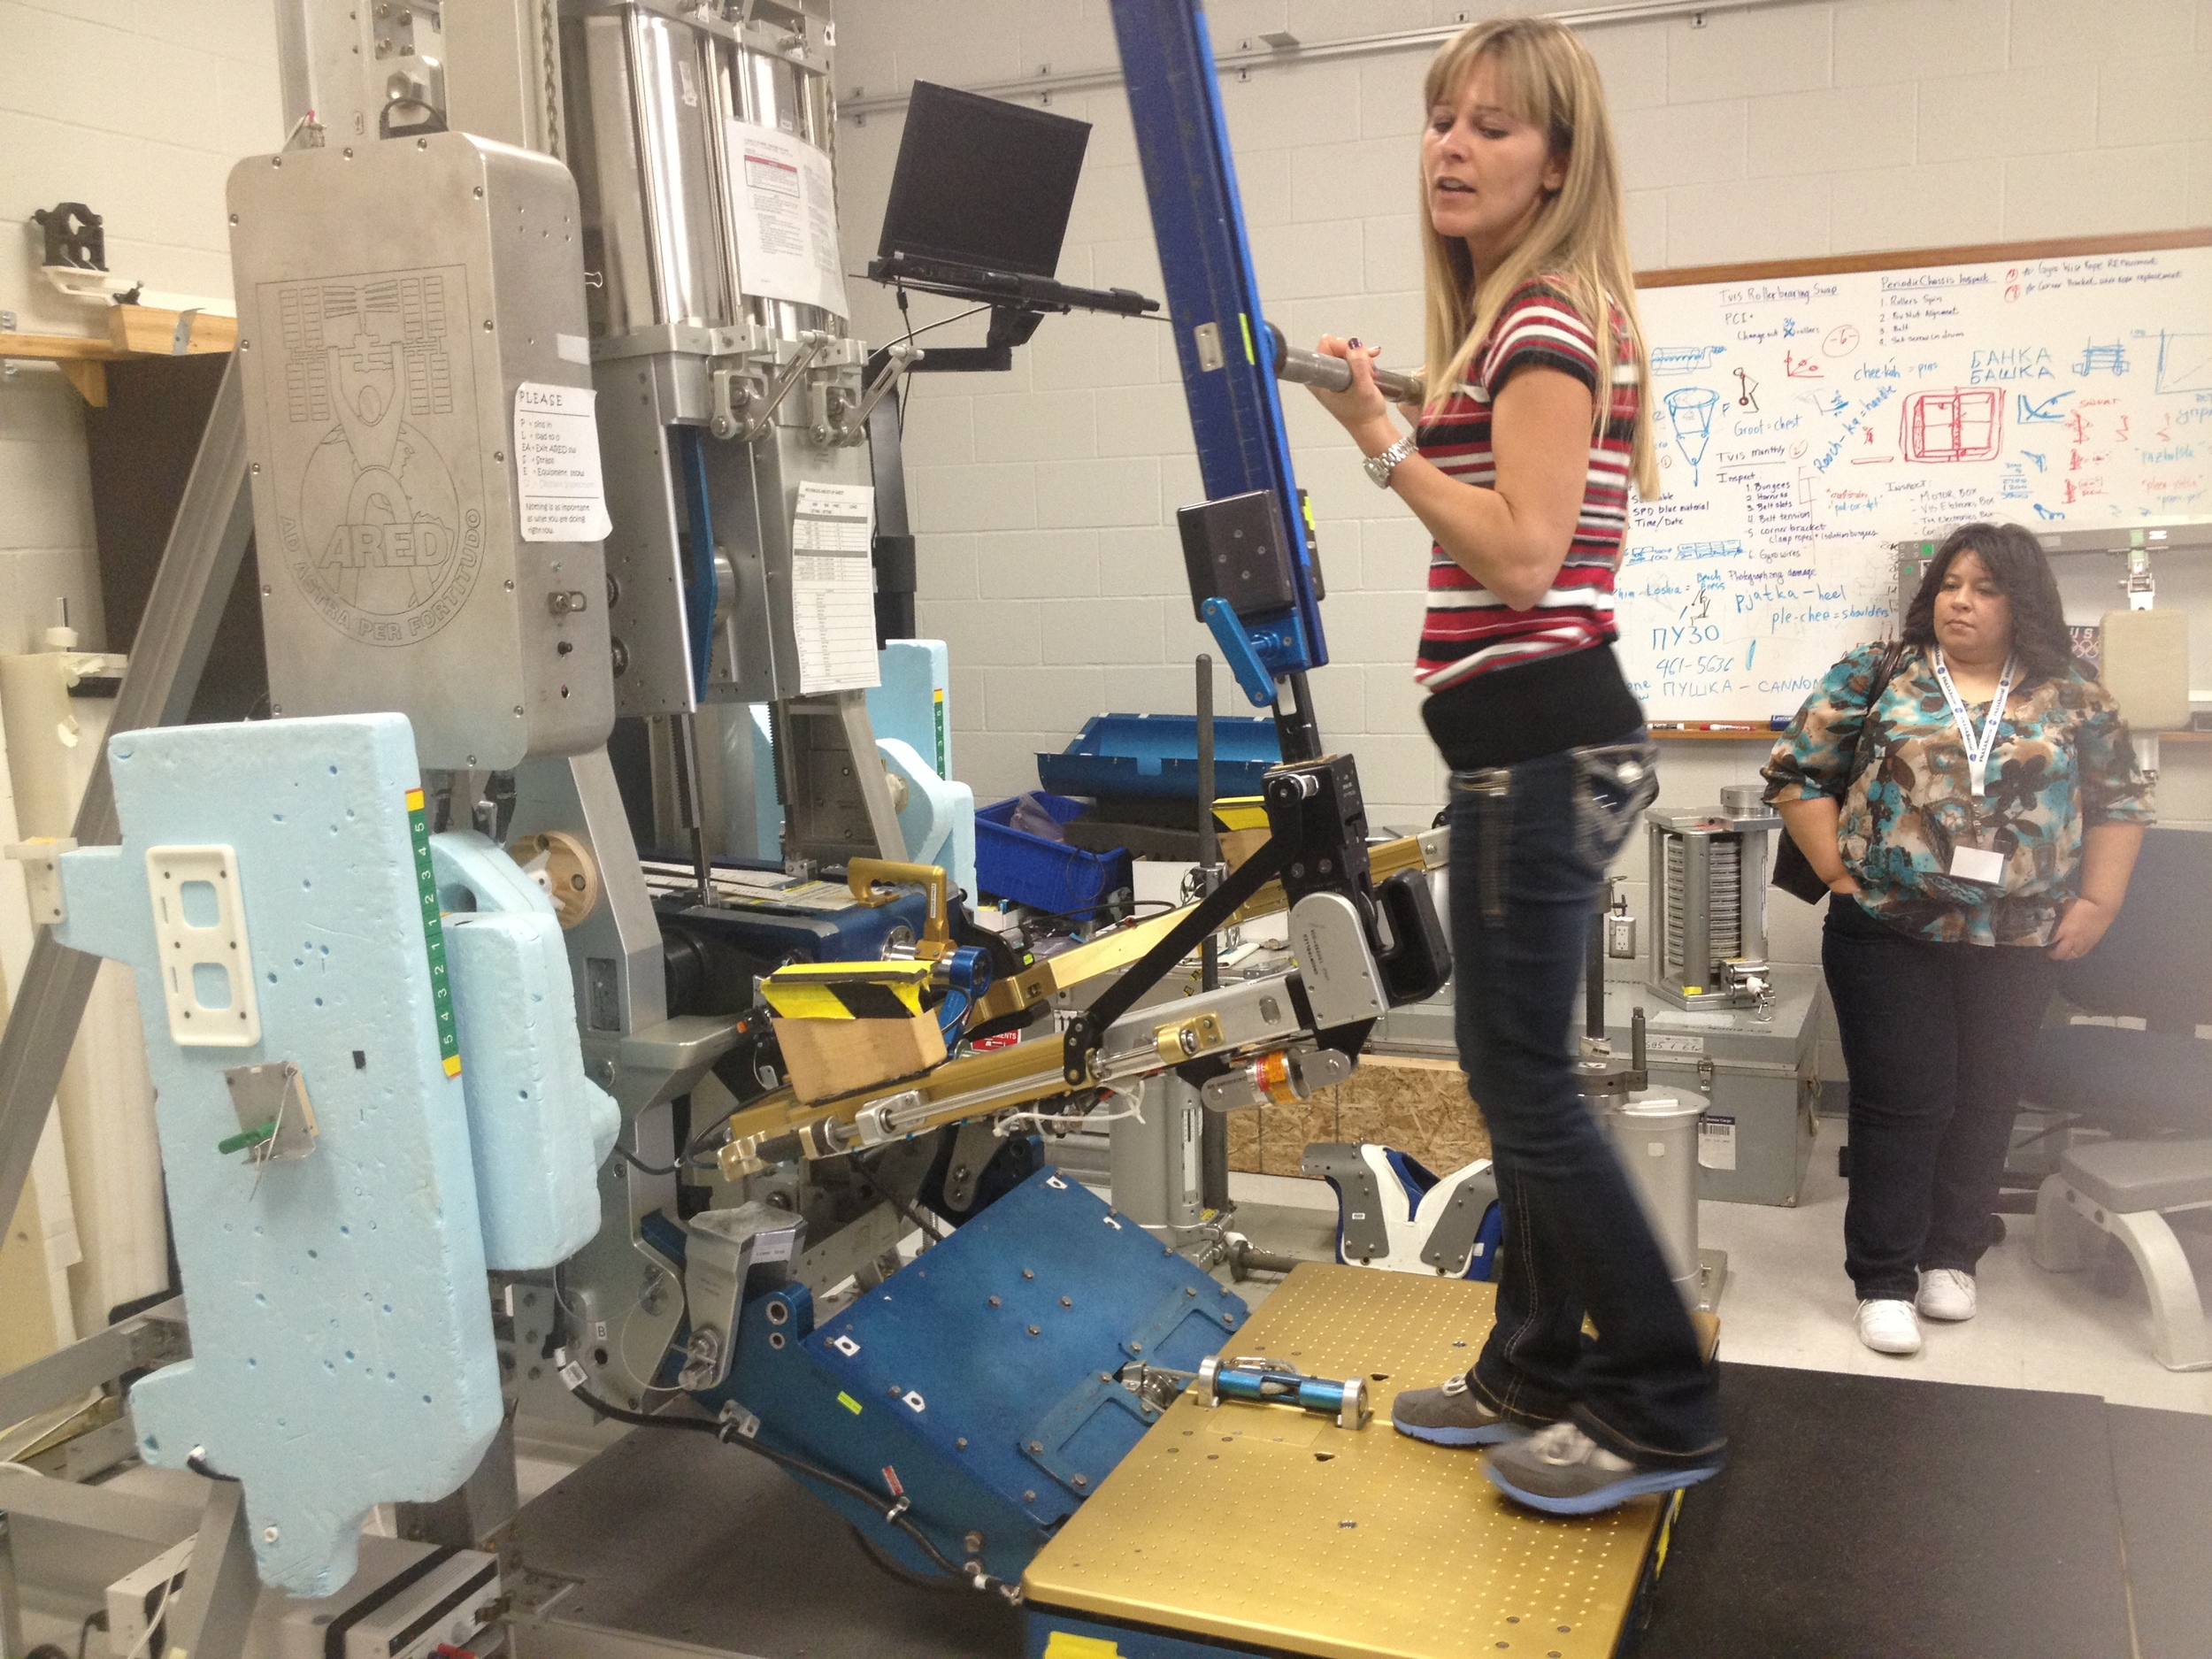 Astronauts have toexerciseto prevent muscle atrophy. This machine provides resistance and allows squats and lifts.